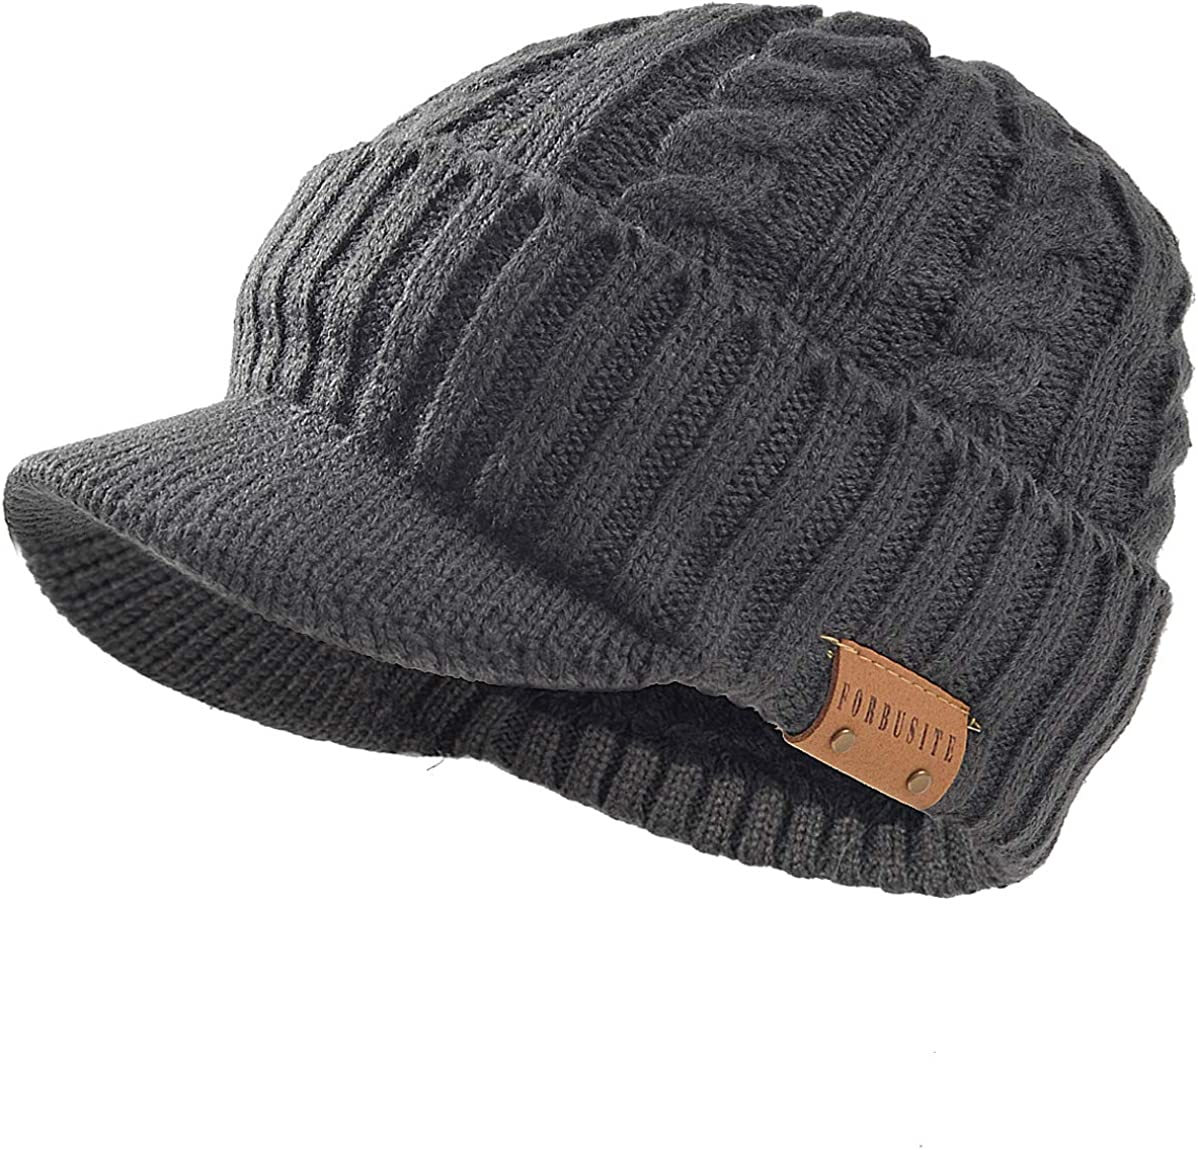 FORBUSITE Men ! Super beauty product restock quality top! Knit Beanie Visor Cap for Women Winter Beani Thick Cheap super special price